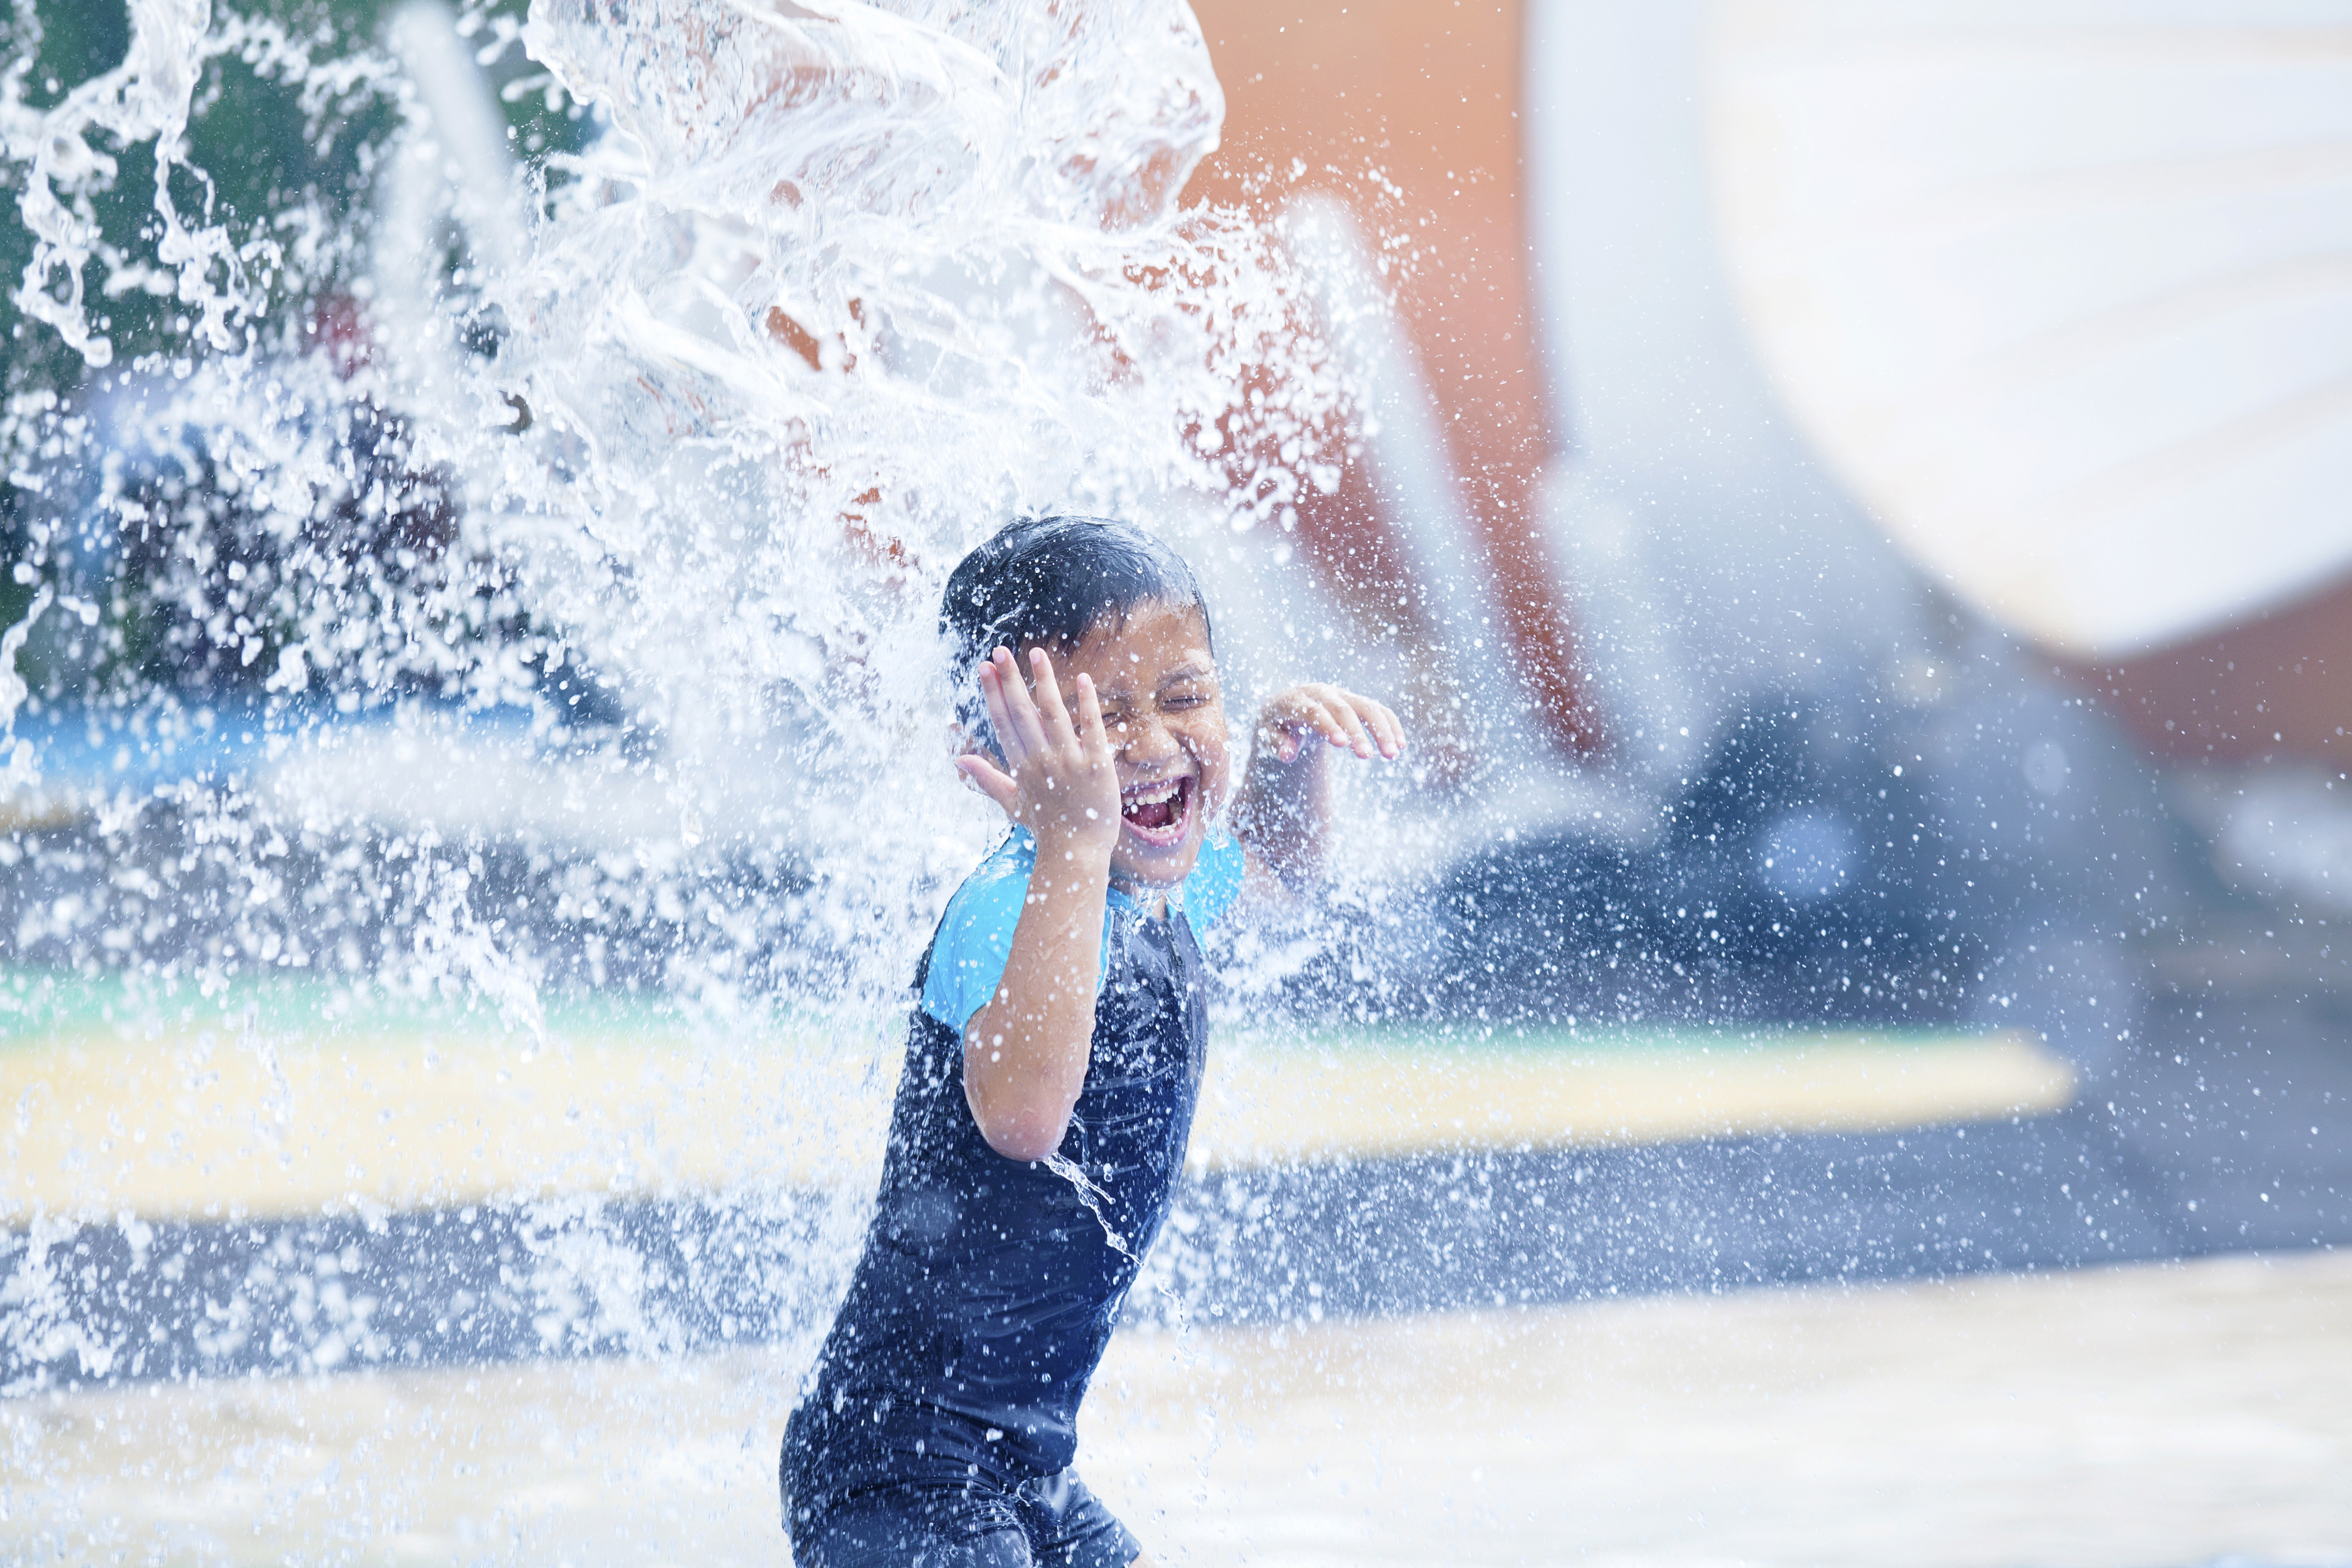 A boy splashing water - Westgate Resorts